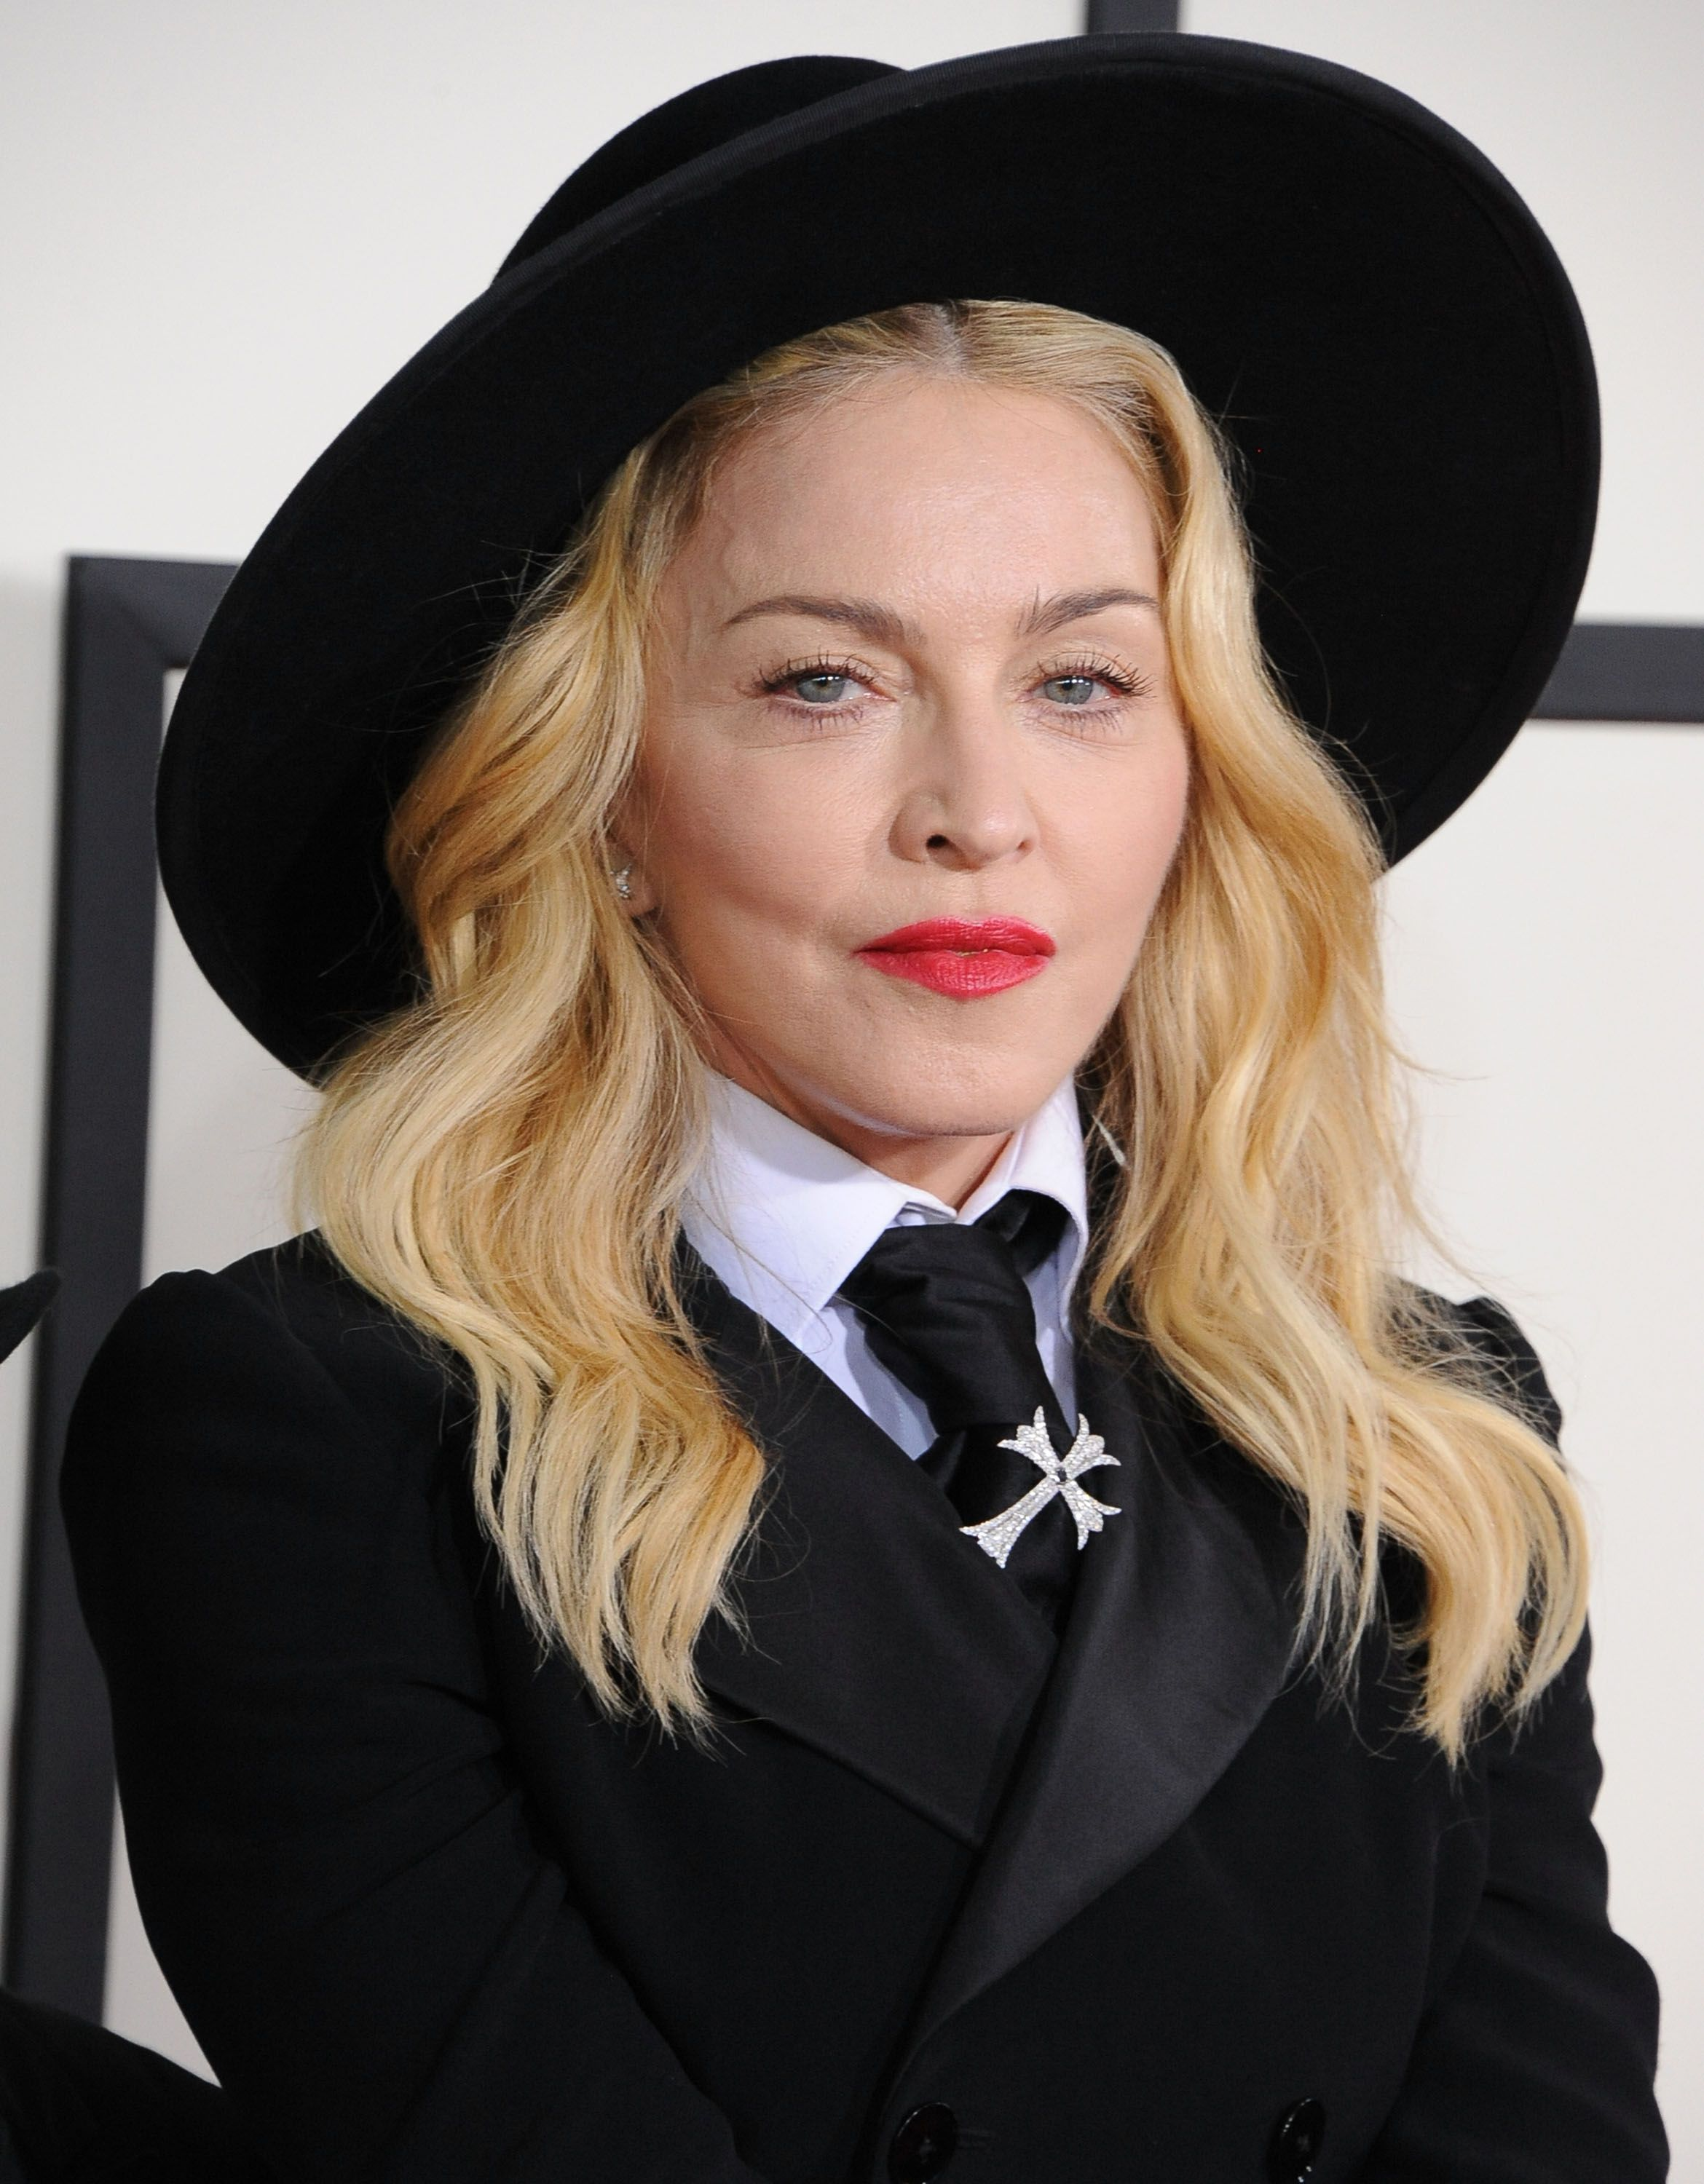 Madonna at the 56th GRAMMY Awards on January 26, 2014 in Los Angeles, California. | Photo: Getty Images